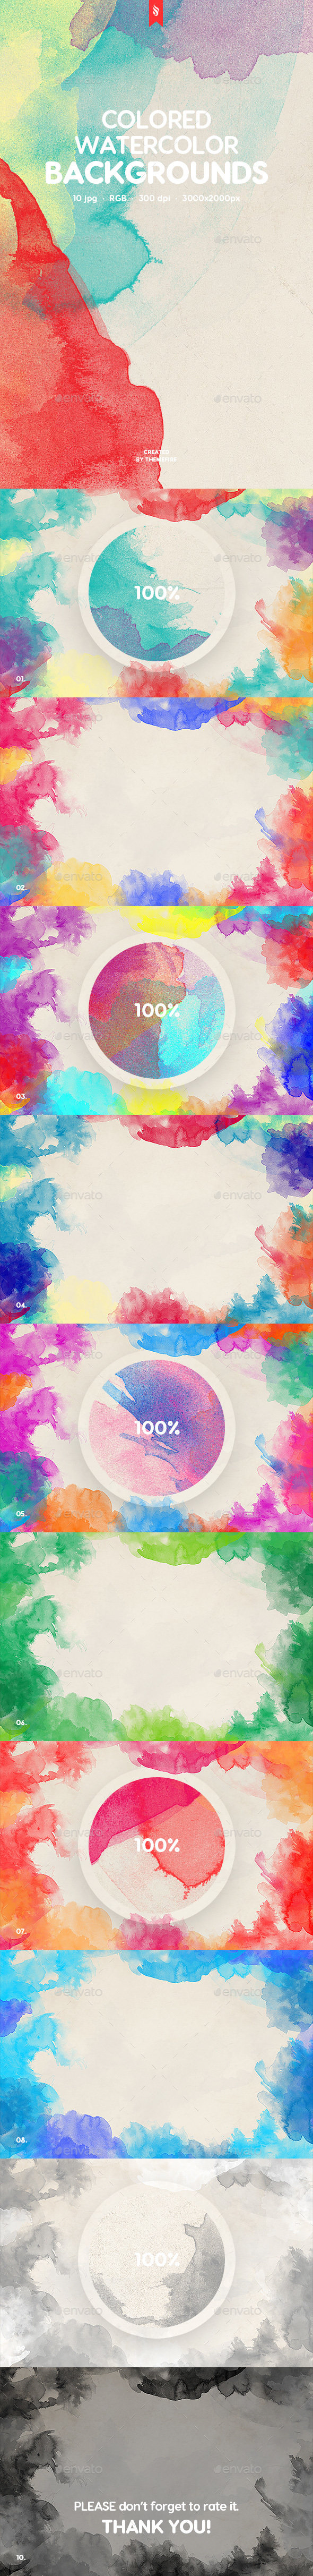 Colored Watercolor Backgrounds - Abstract Backgrounds